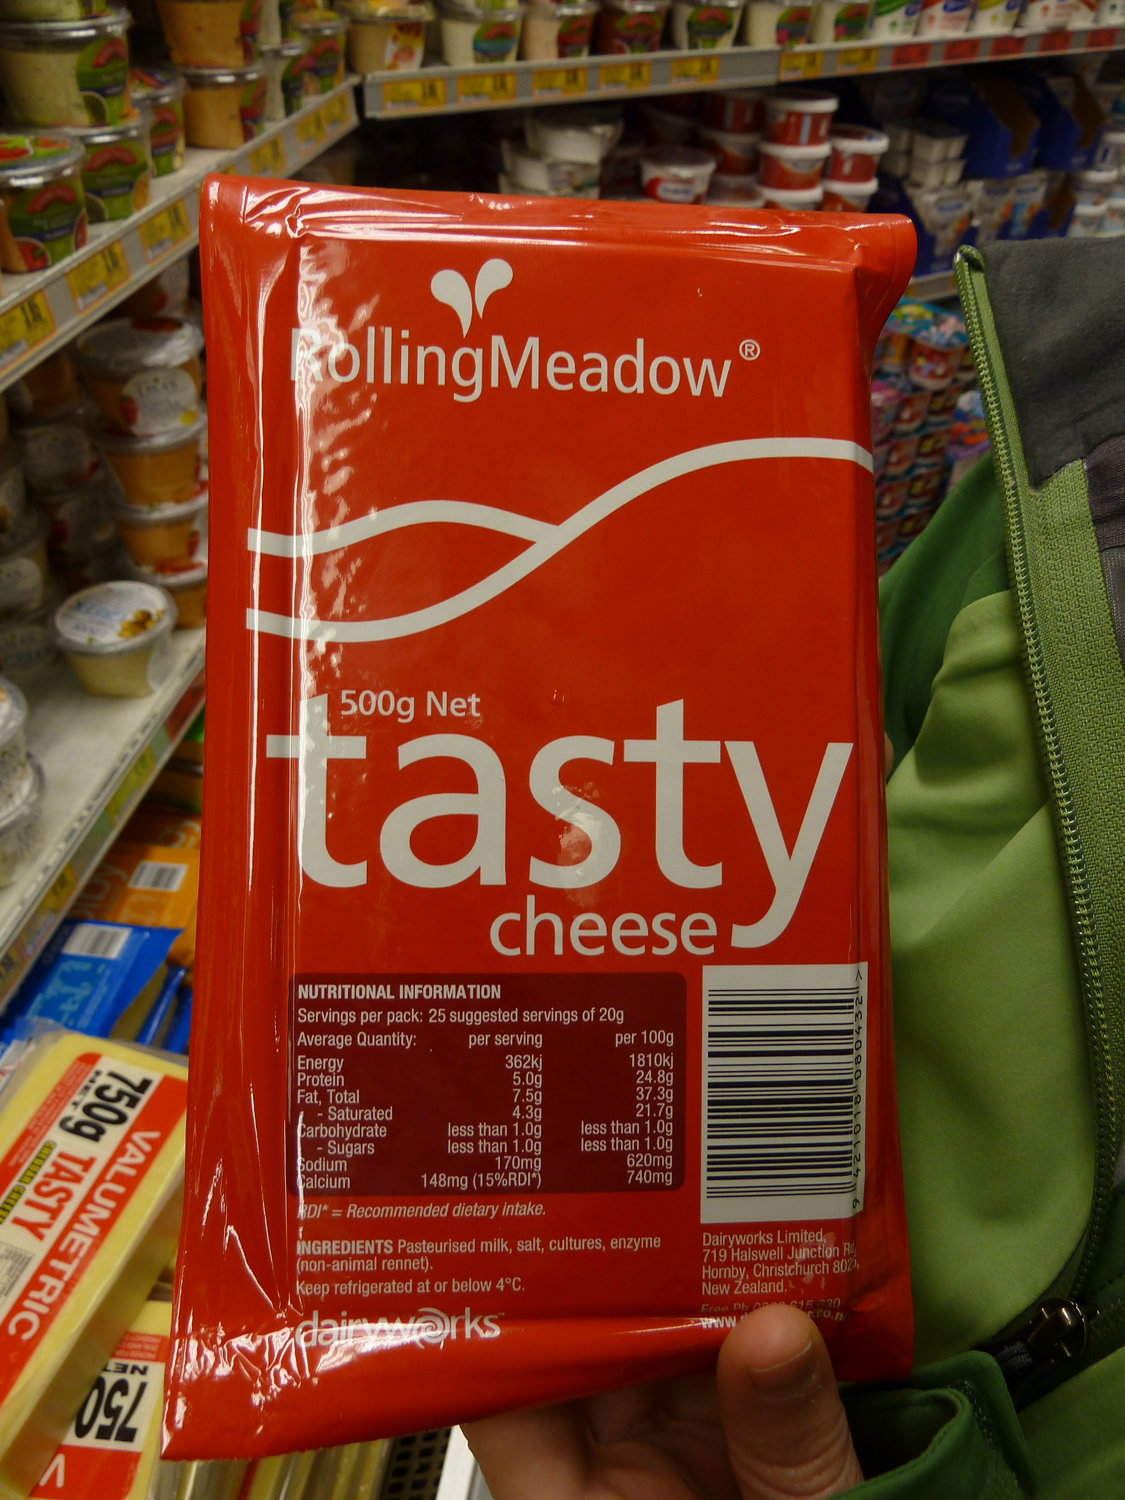 That's Right! This Brand Of Cheese Is Tasty.